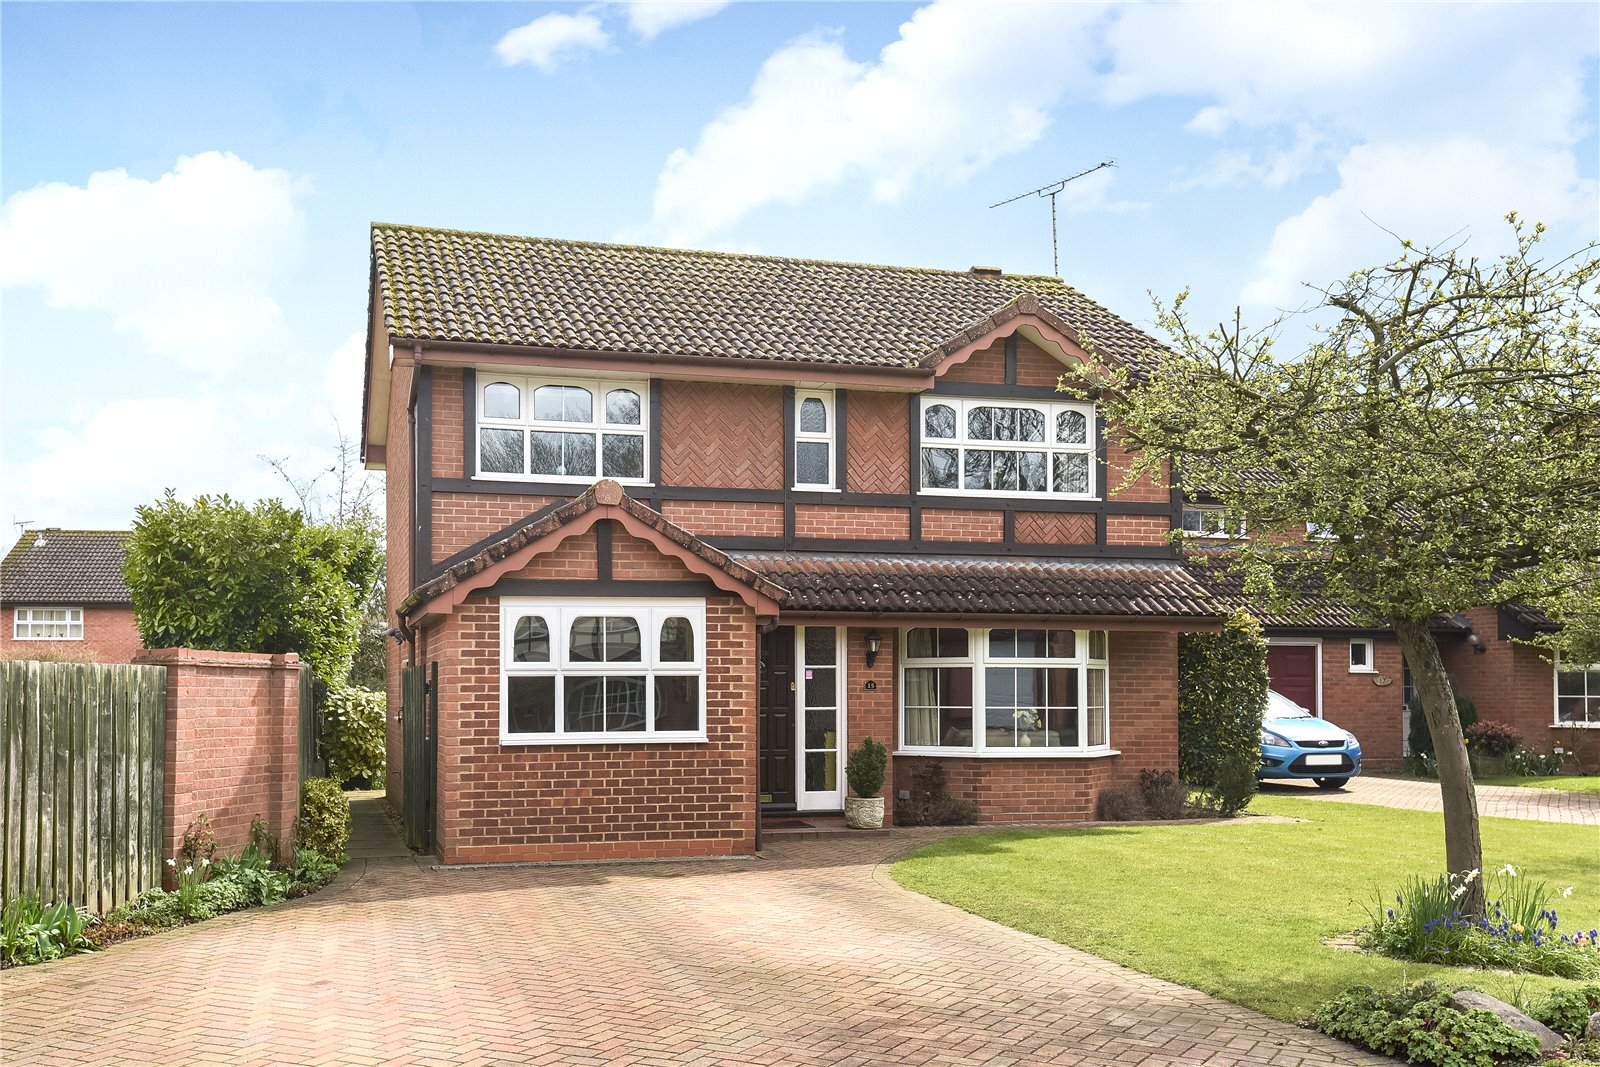 4 Bedrooms Detached House for sale in Crail Close, Wokingham, Berkshire, RG41